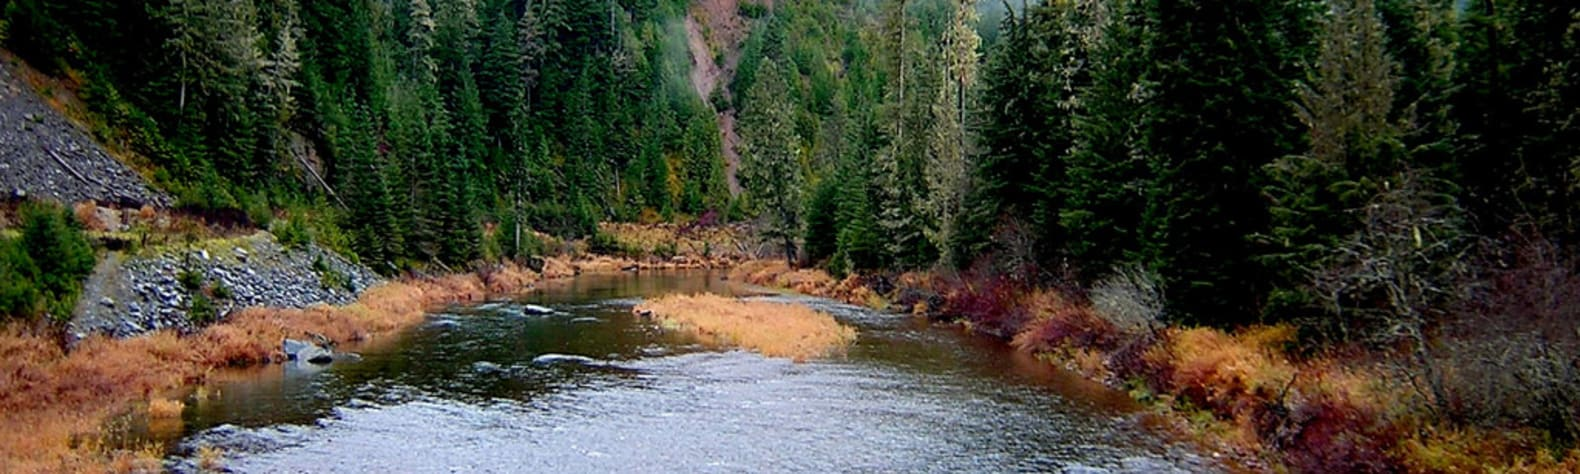 Coeur d'Alene River Campground and Picnic Areas